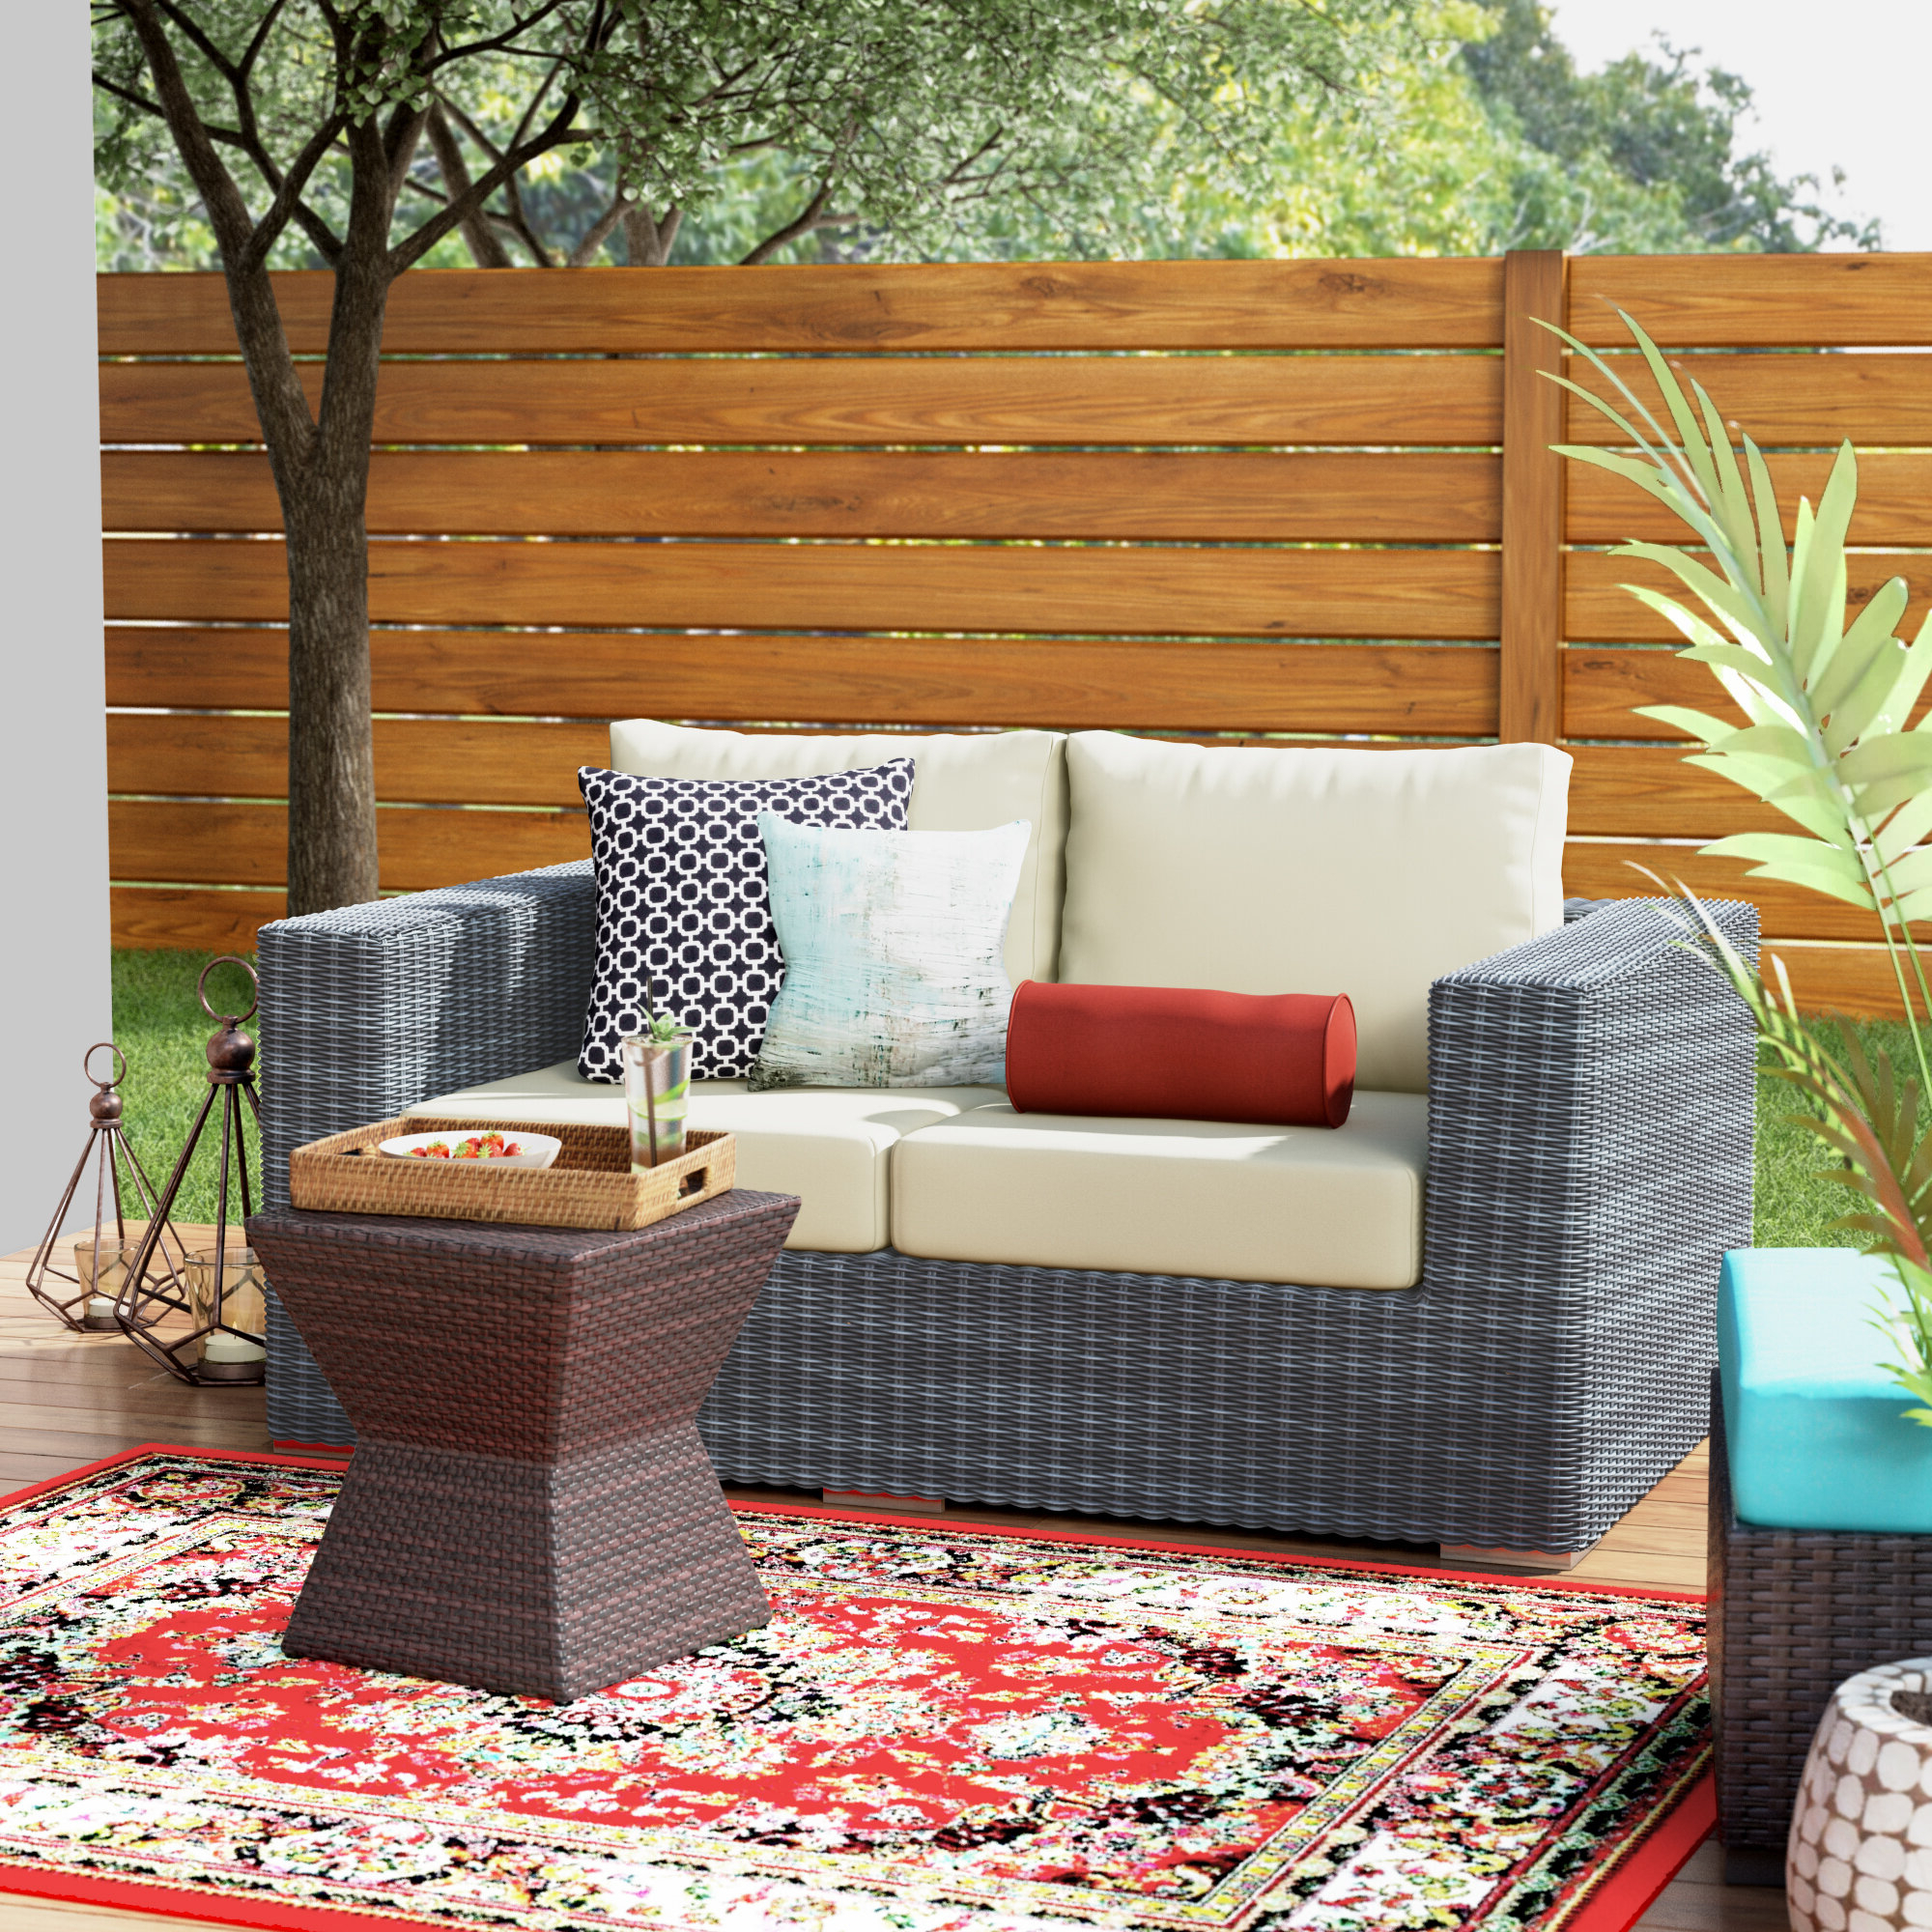 Most Recently Released Keiran Patio Daybeds With Cushions In Keiran Loveseat With Cushions (View 16 of 20)